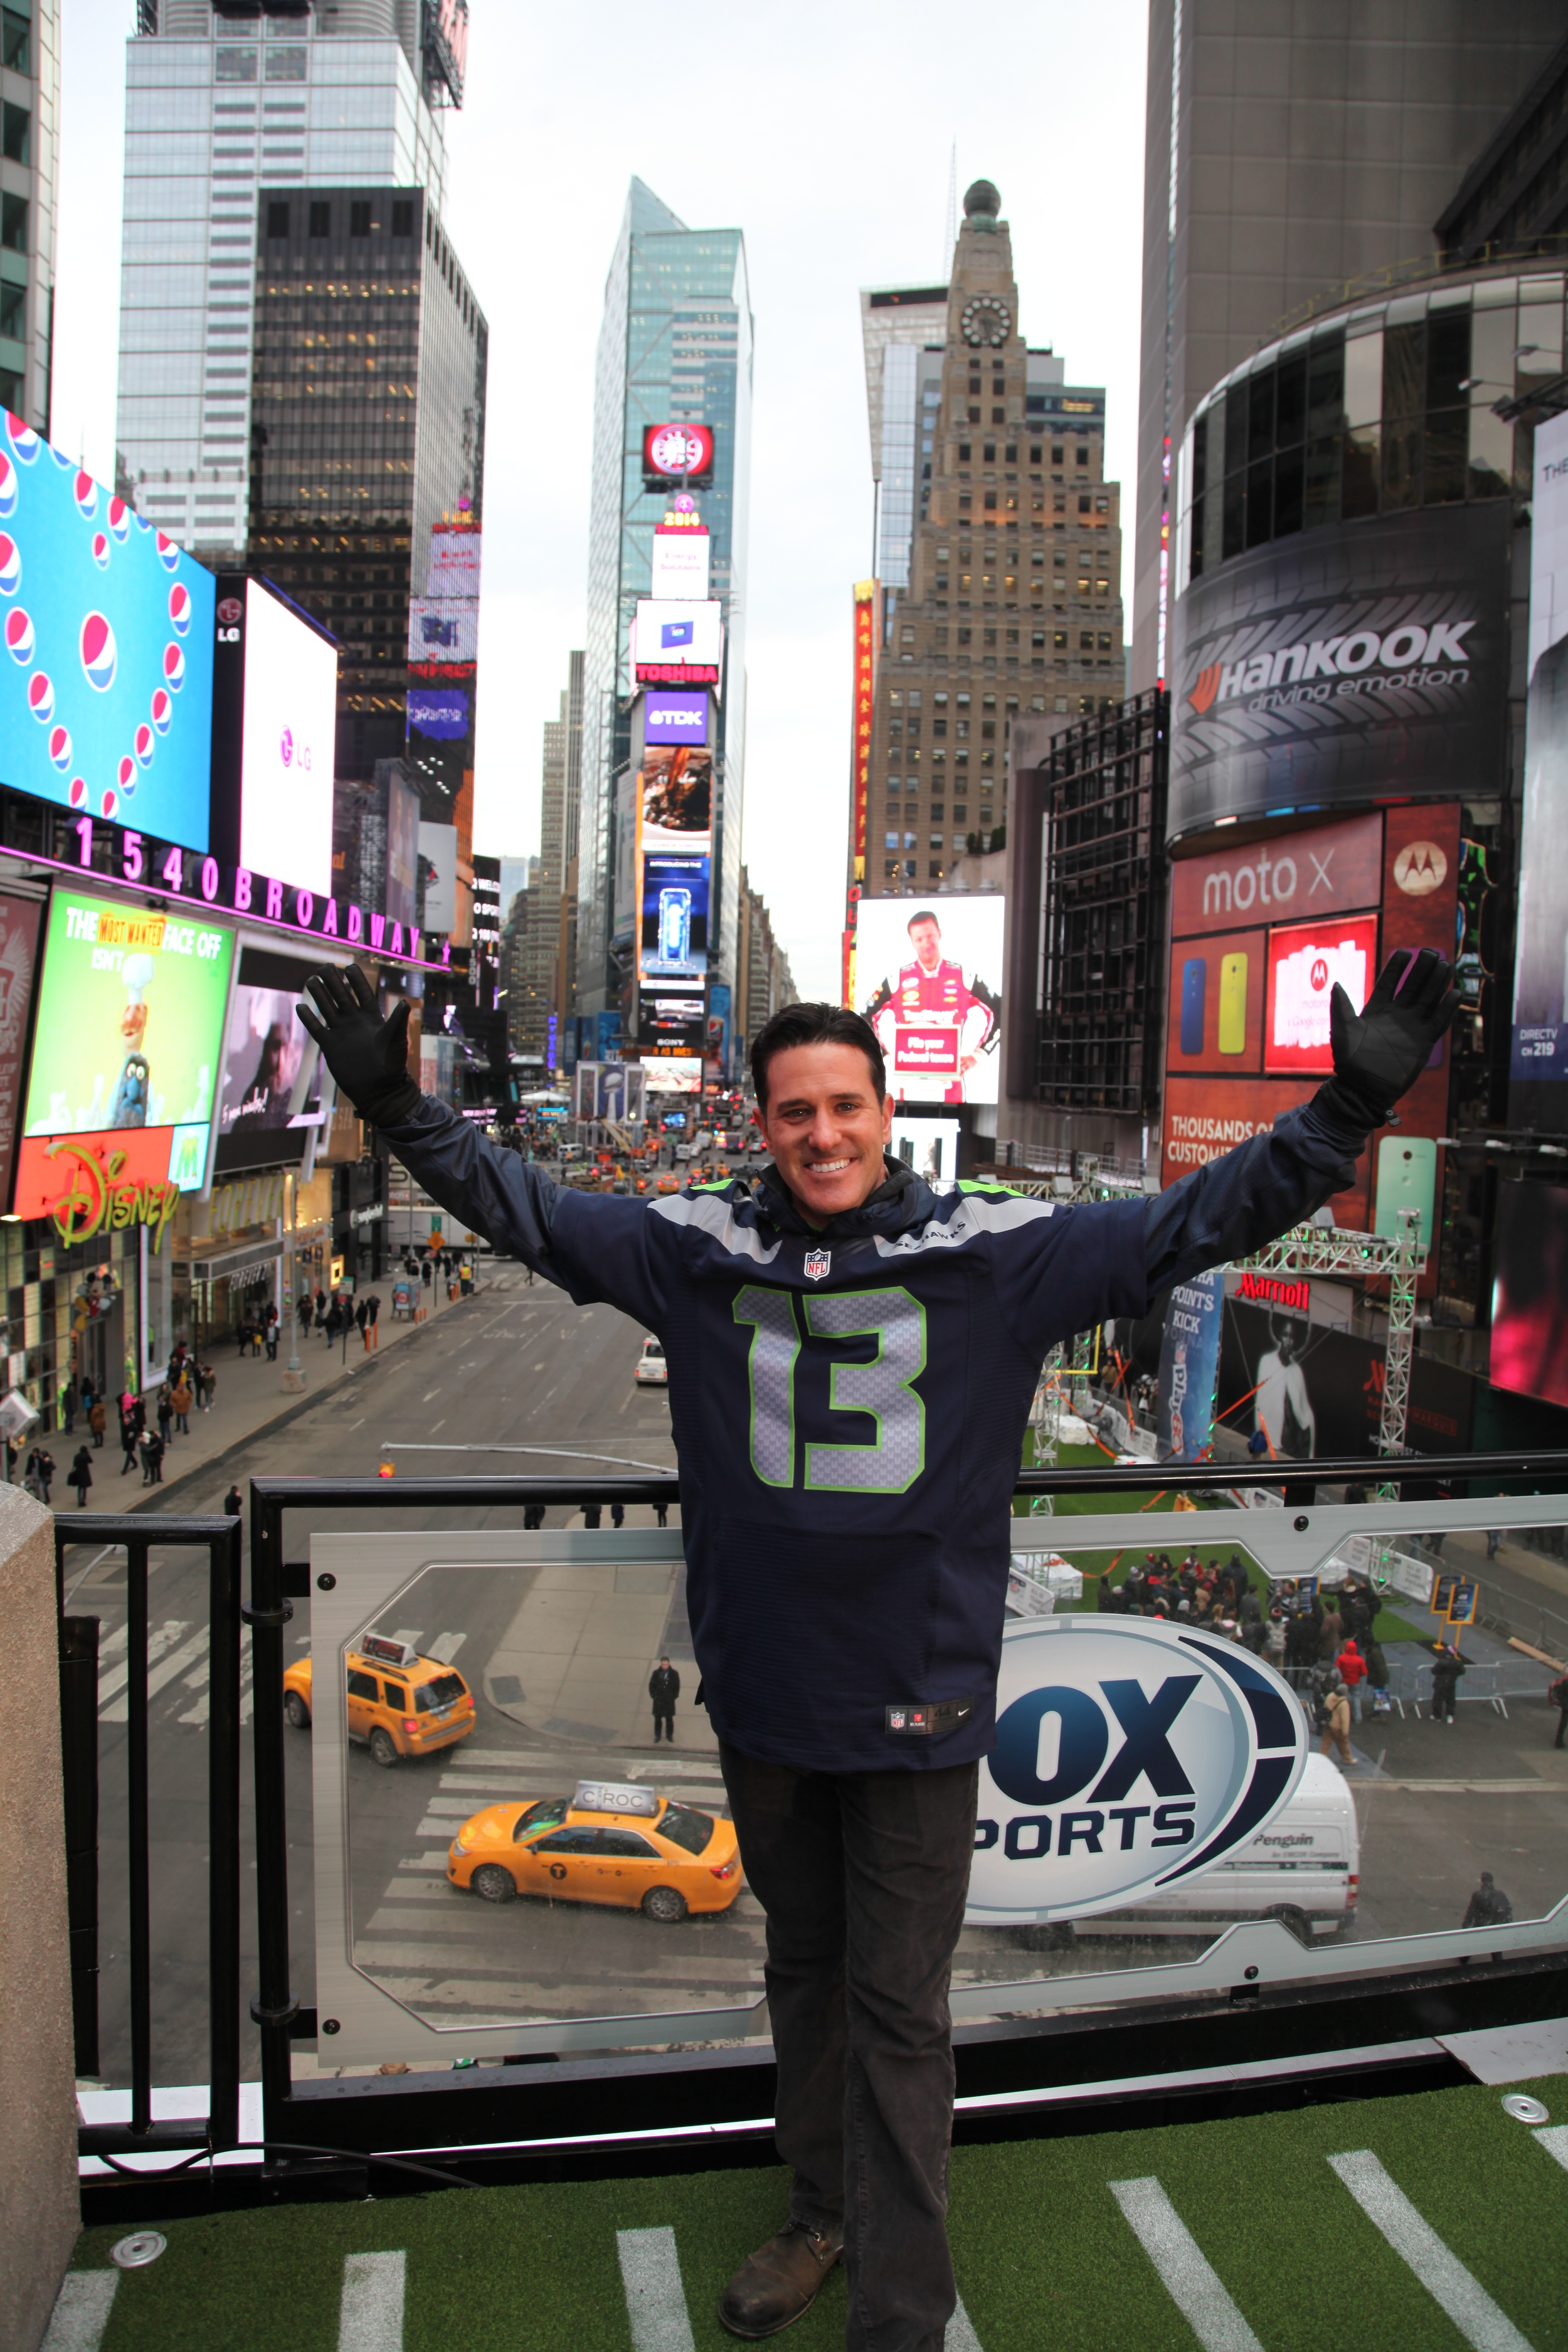 Times Square, NYC. Covering Super Bowl XLVII.